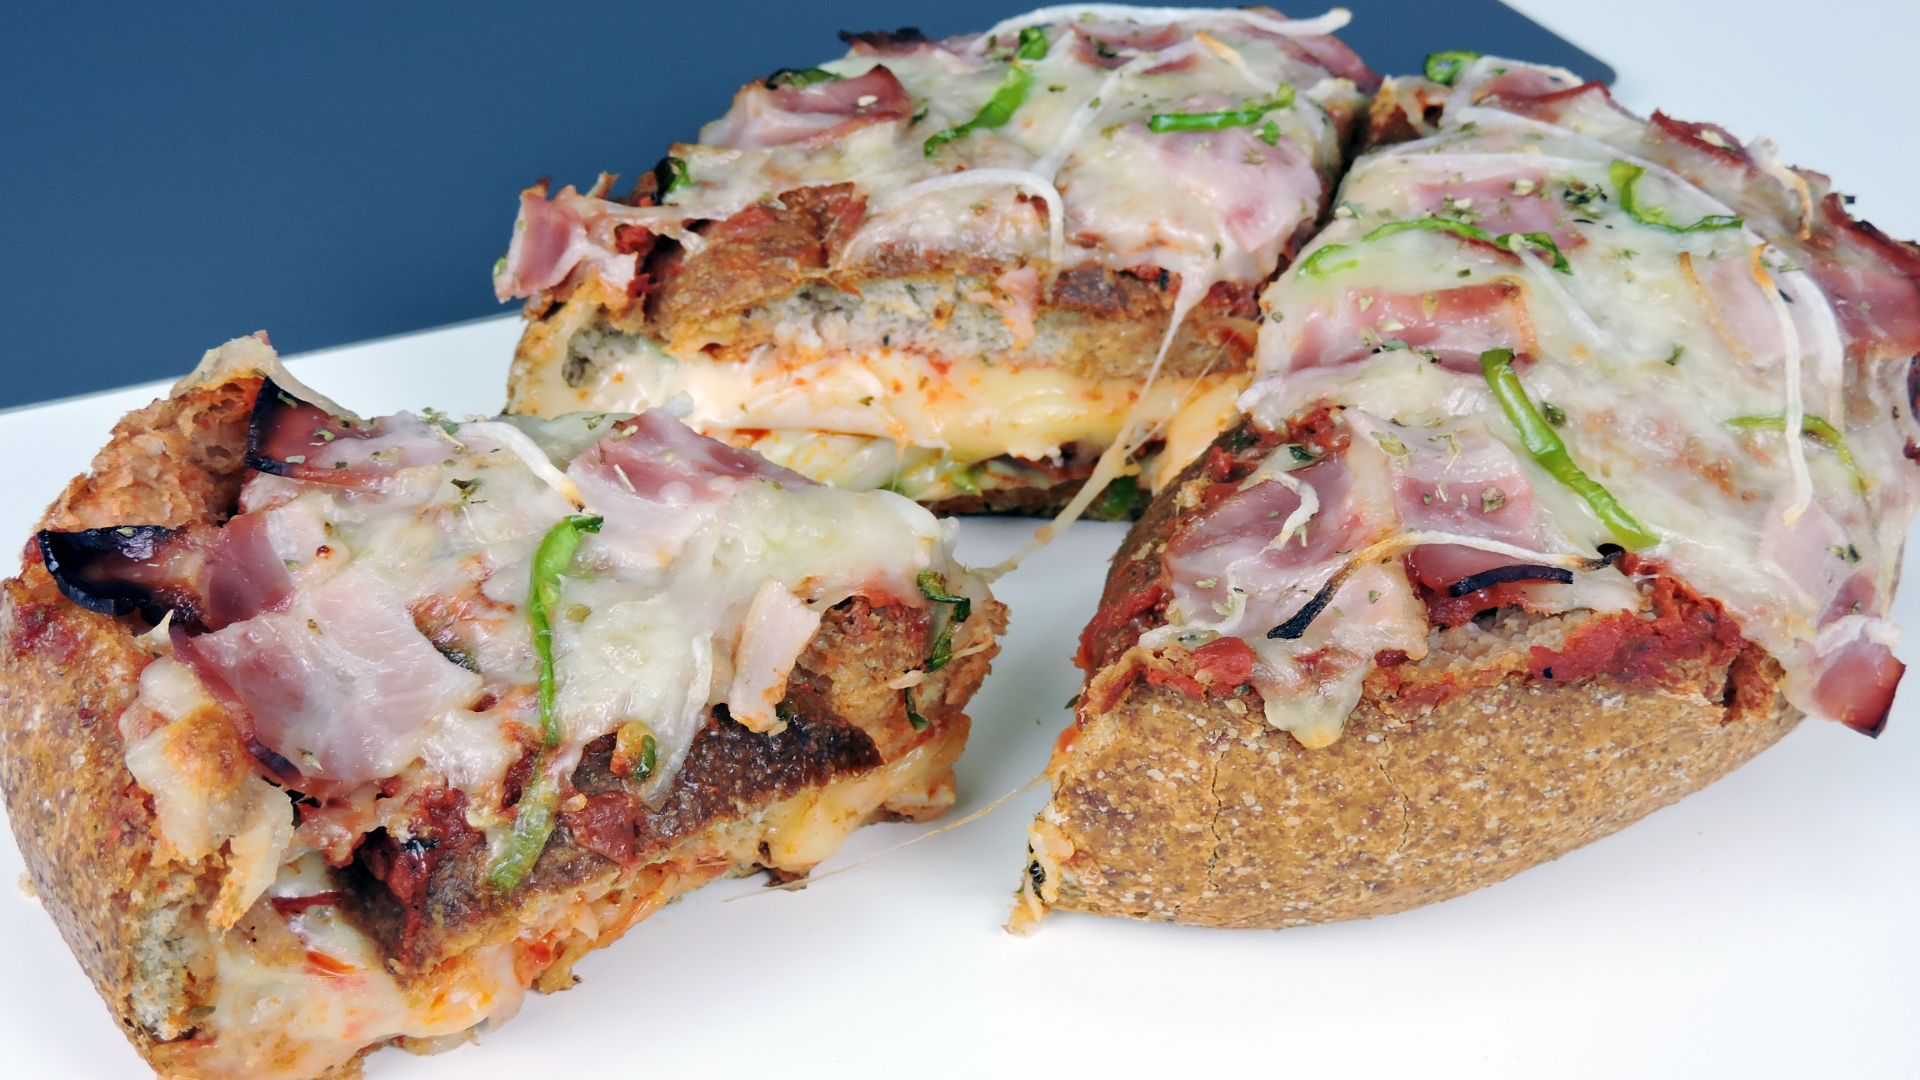 Pan pizza relleno